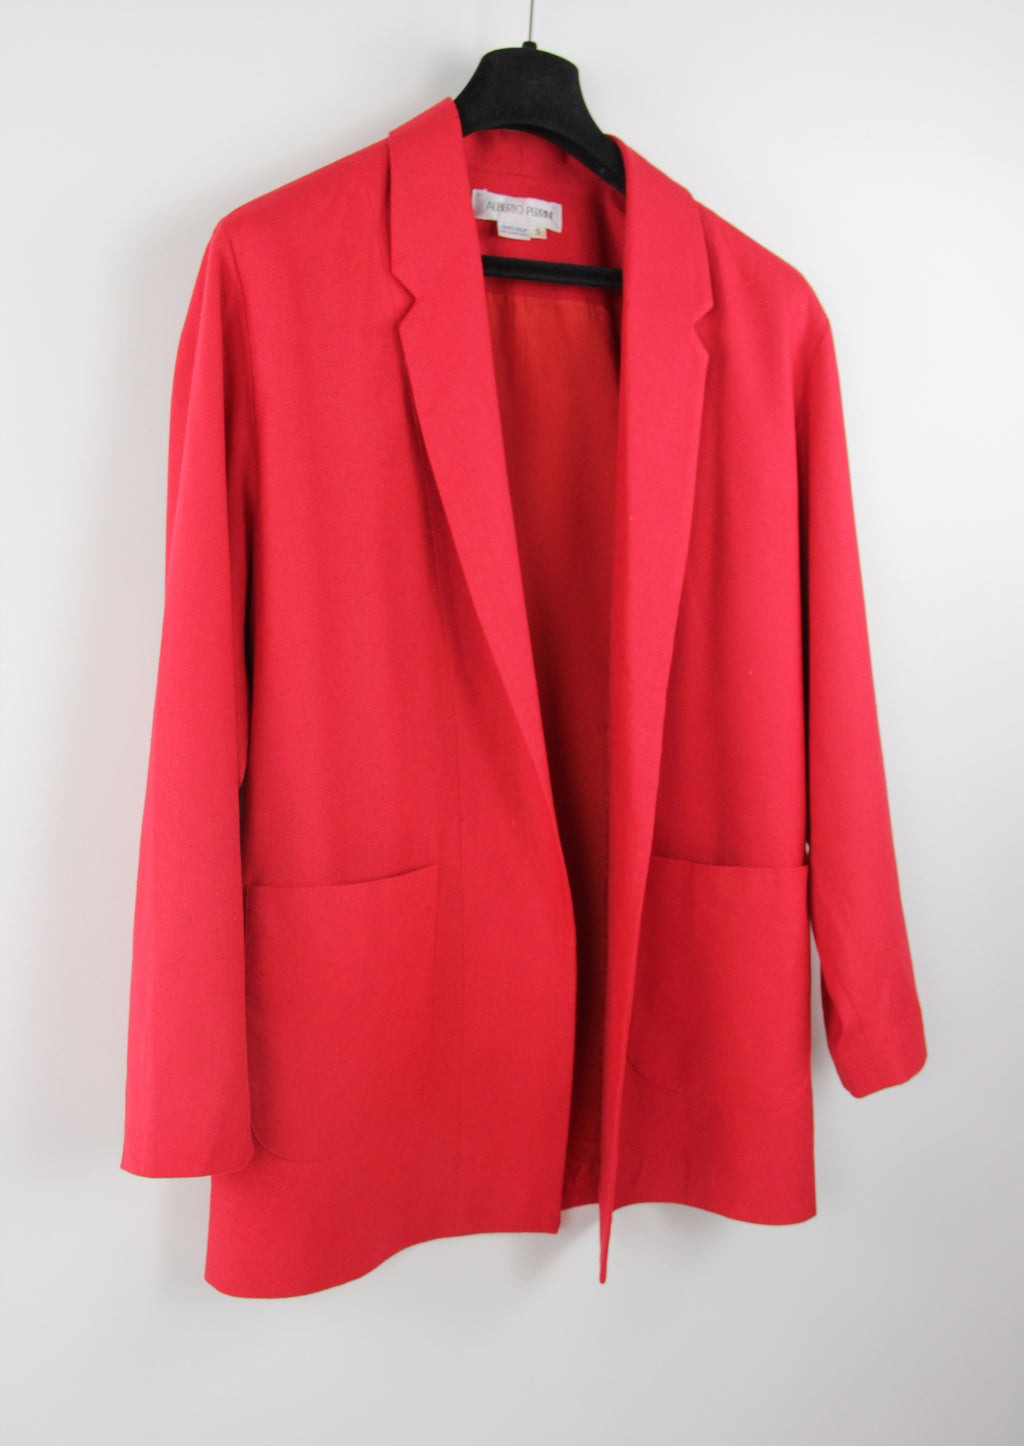 Vintage Pure Silk Red Women's Oversized Blazer, SIZE S